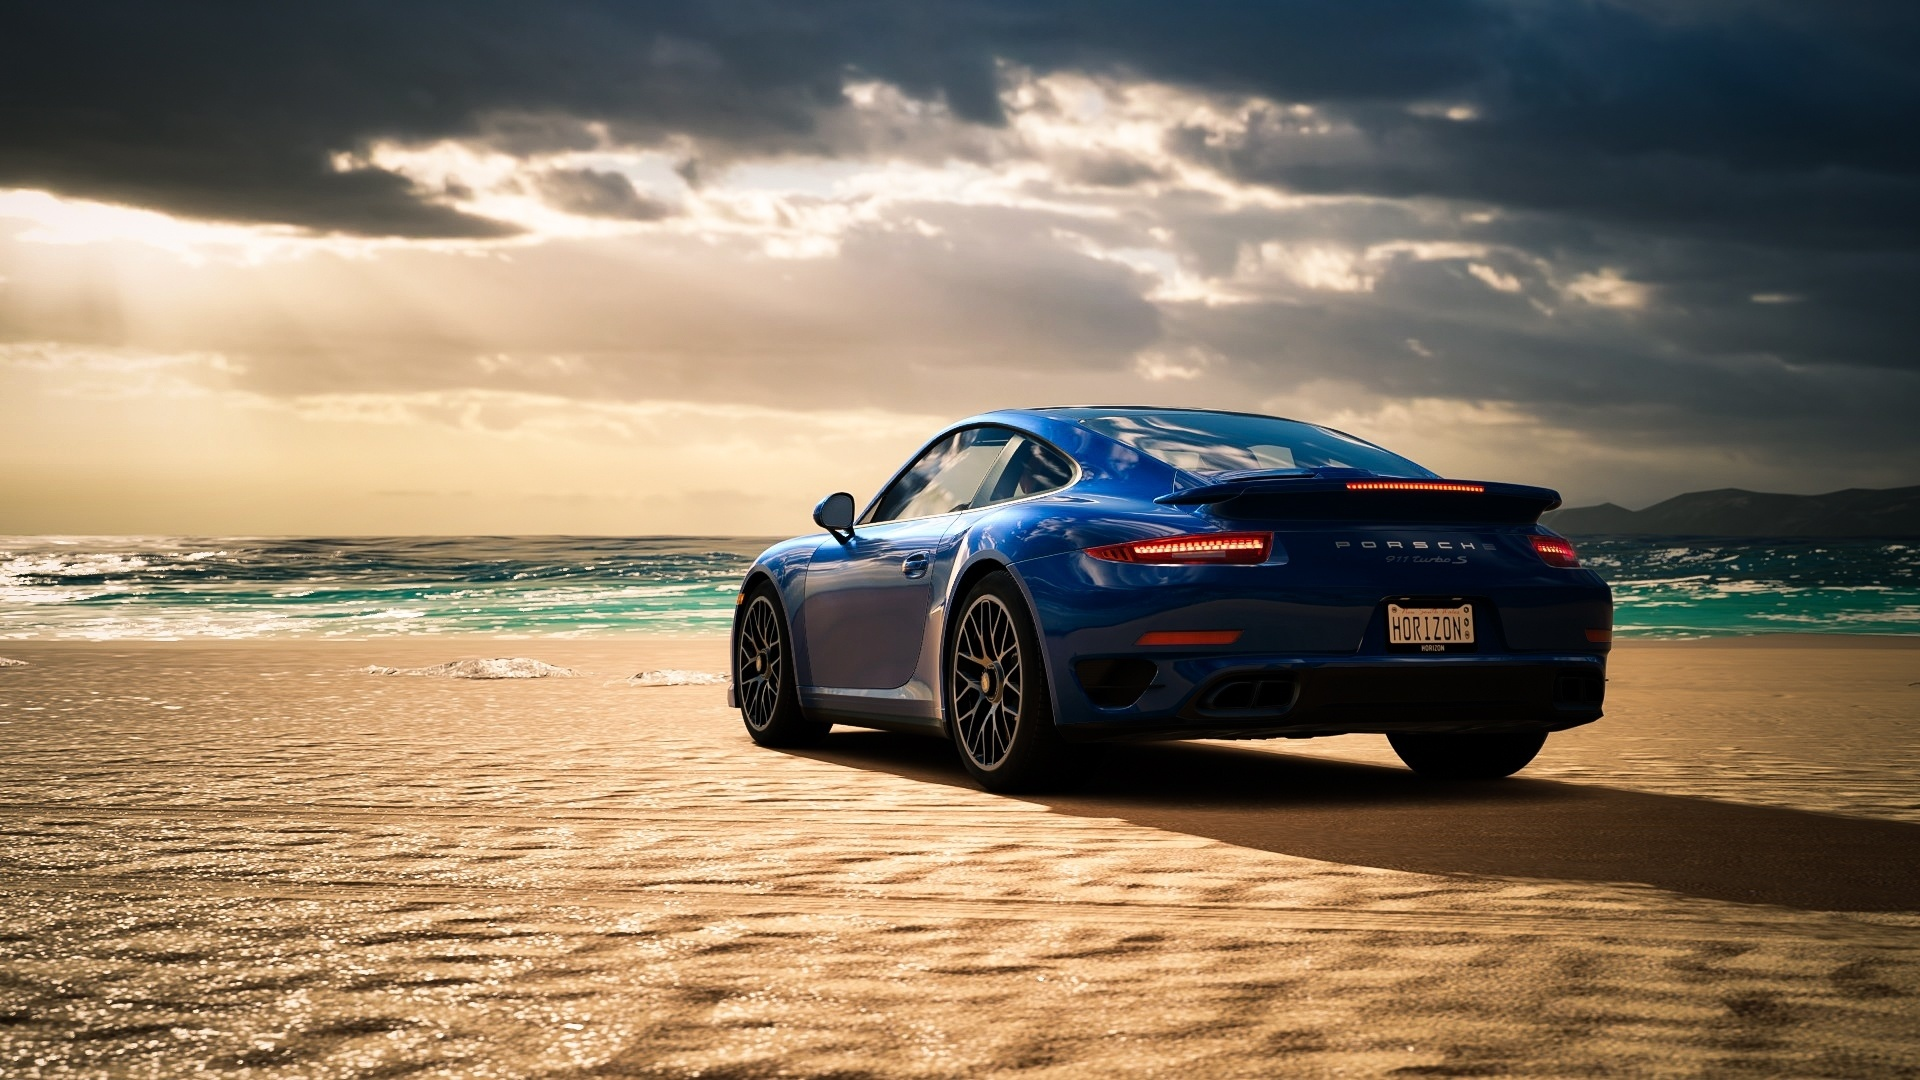 Porsche best wallpaper